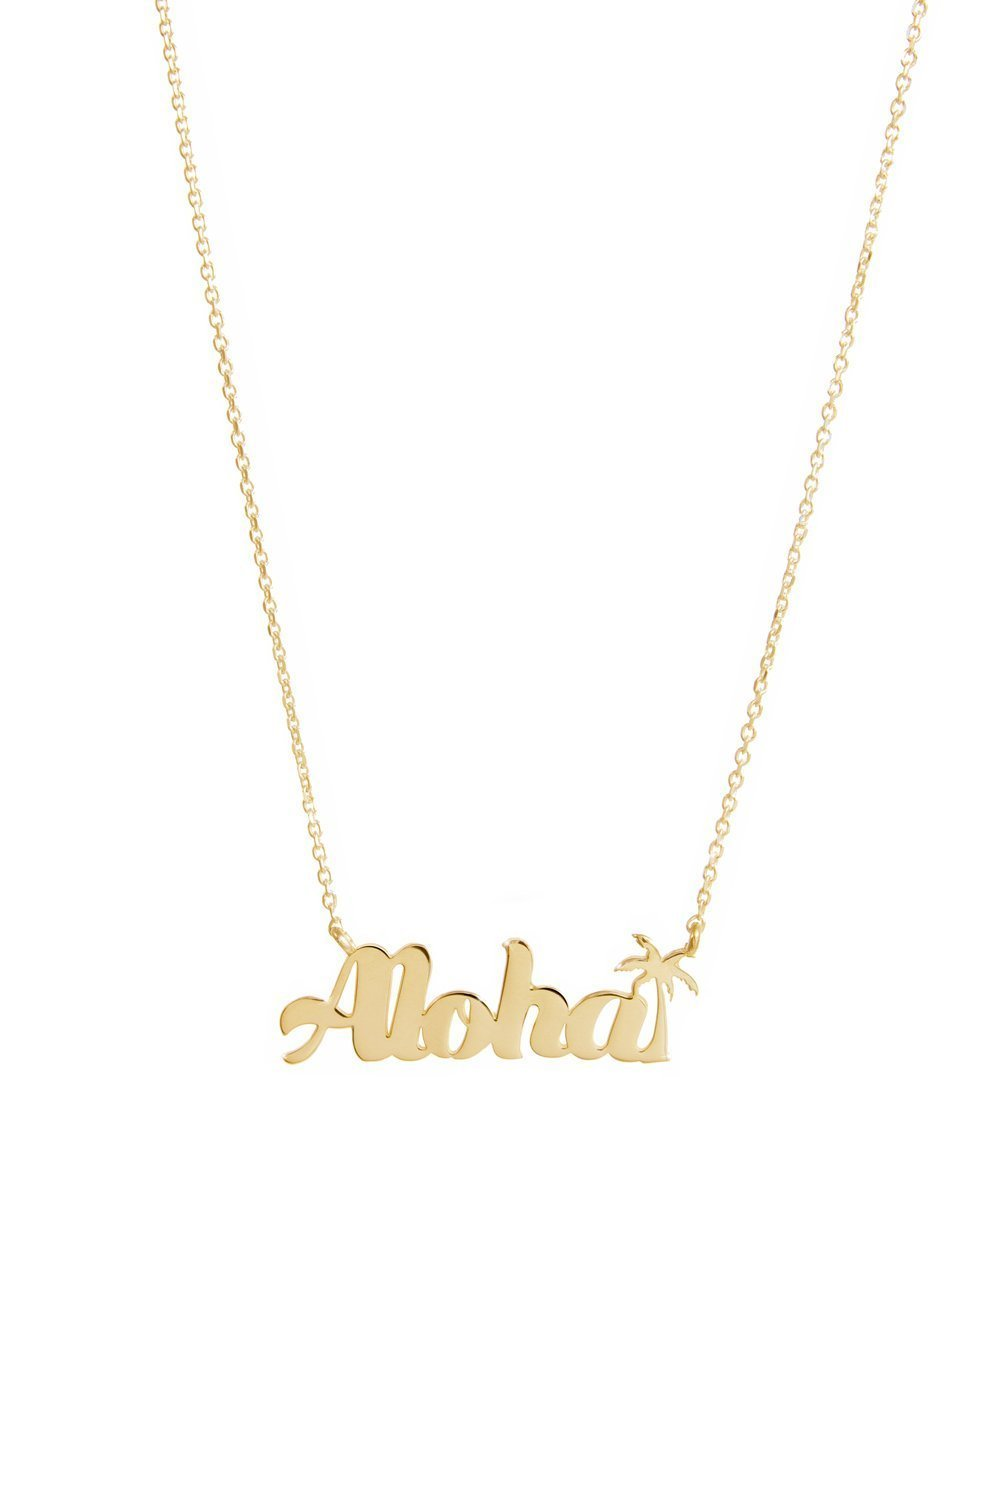 8d594818fa05d2 Amazon.com: Aloha Necklace, Gold Word Pendant, 9K, 14K, 18K Gold Necklace,  Rose Gold Aloha, Inspirational Gift For Her /code: 0.003: Handmade